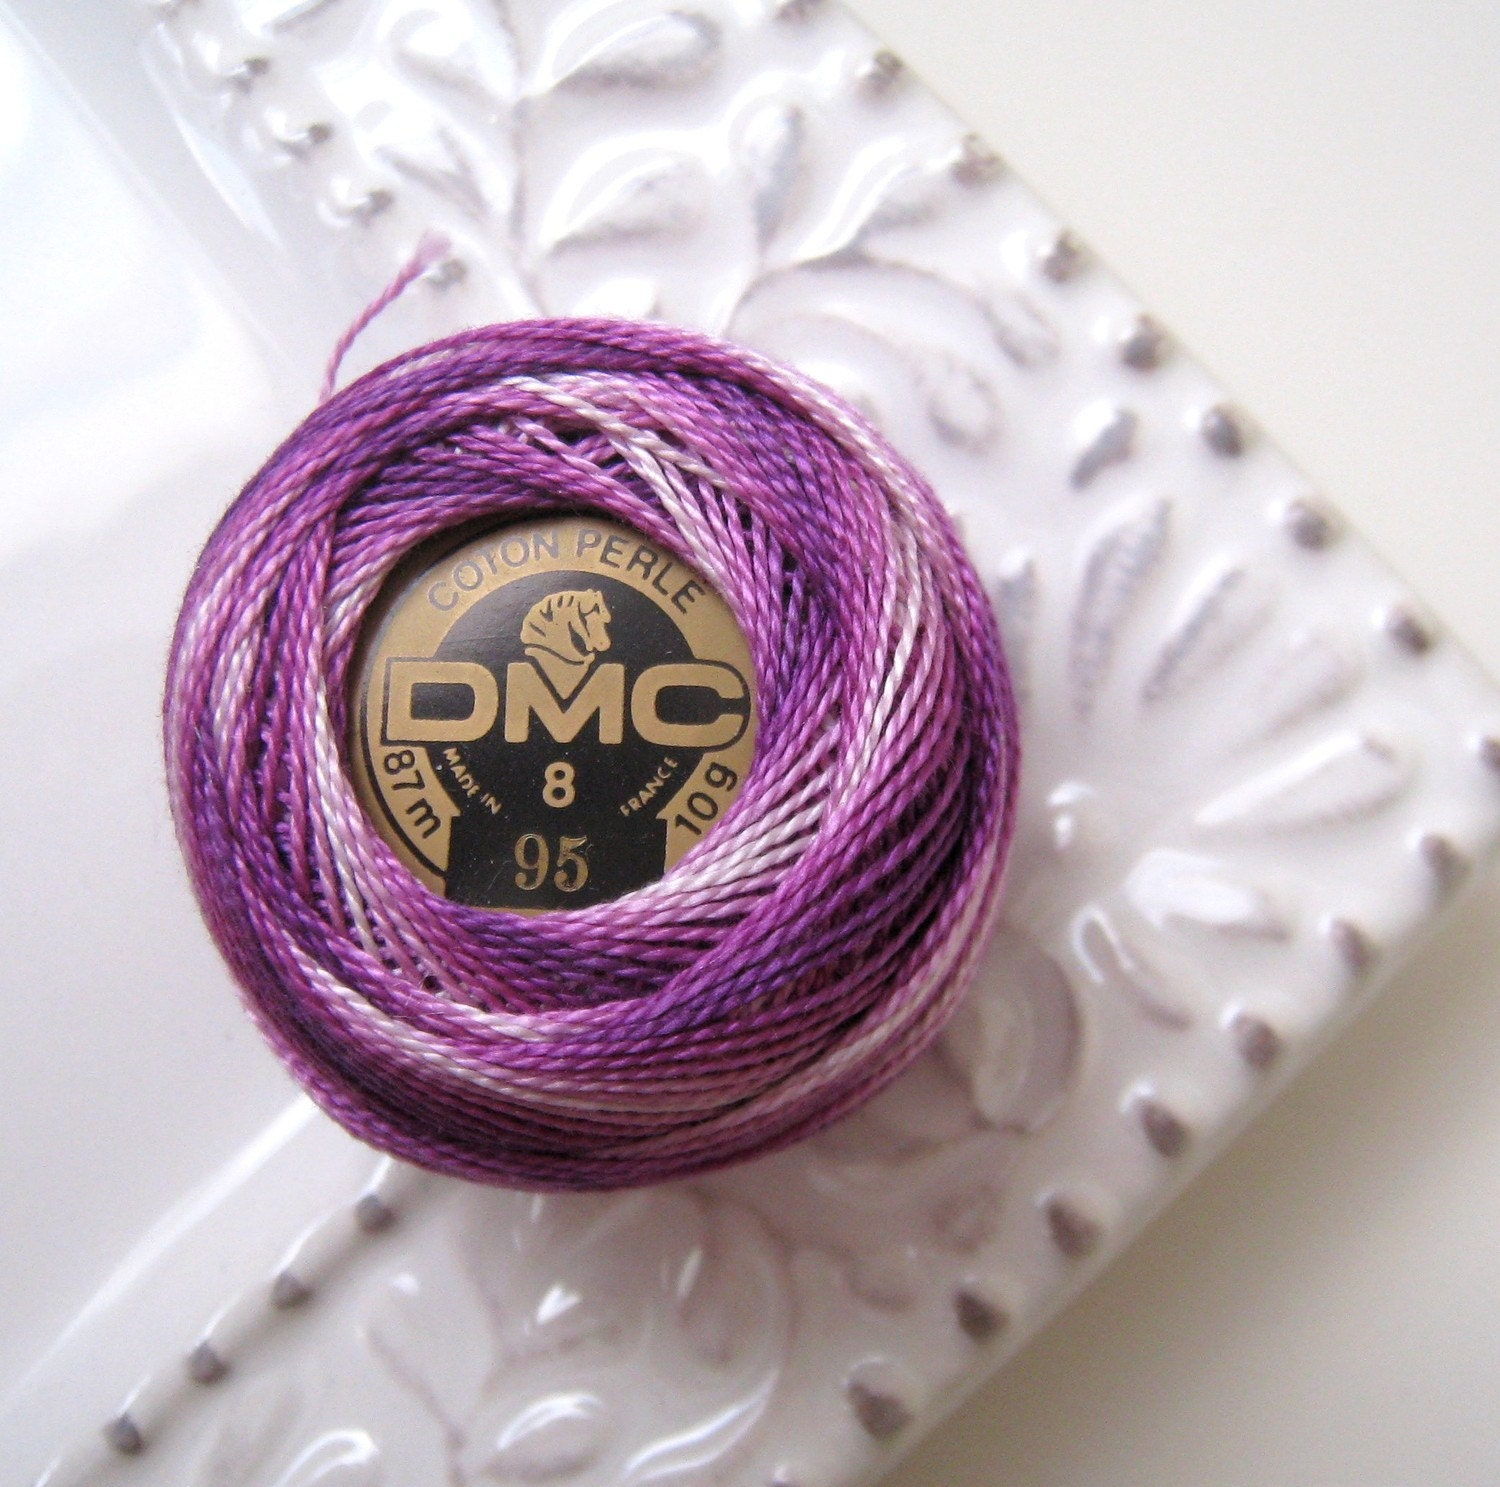 DMC Perle Cotton Thread Size 8 Variegated Purple 95 by NAKPUNAR from etsy.com